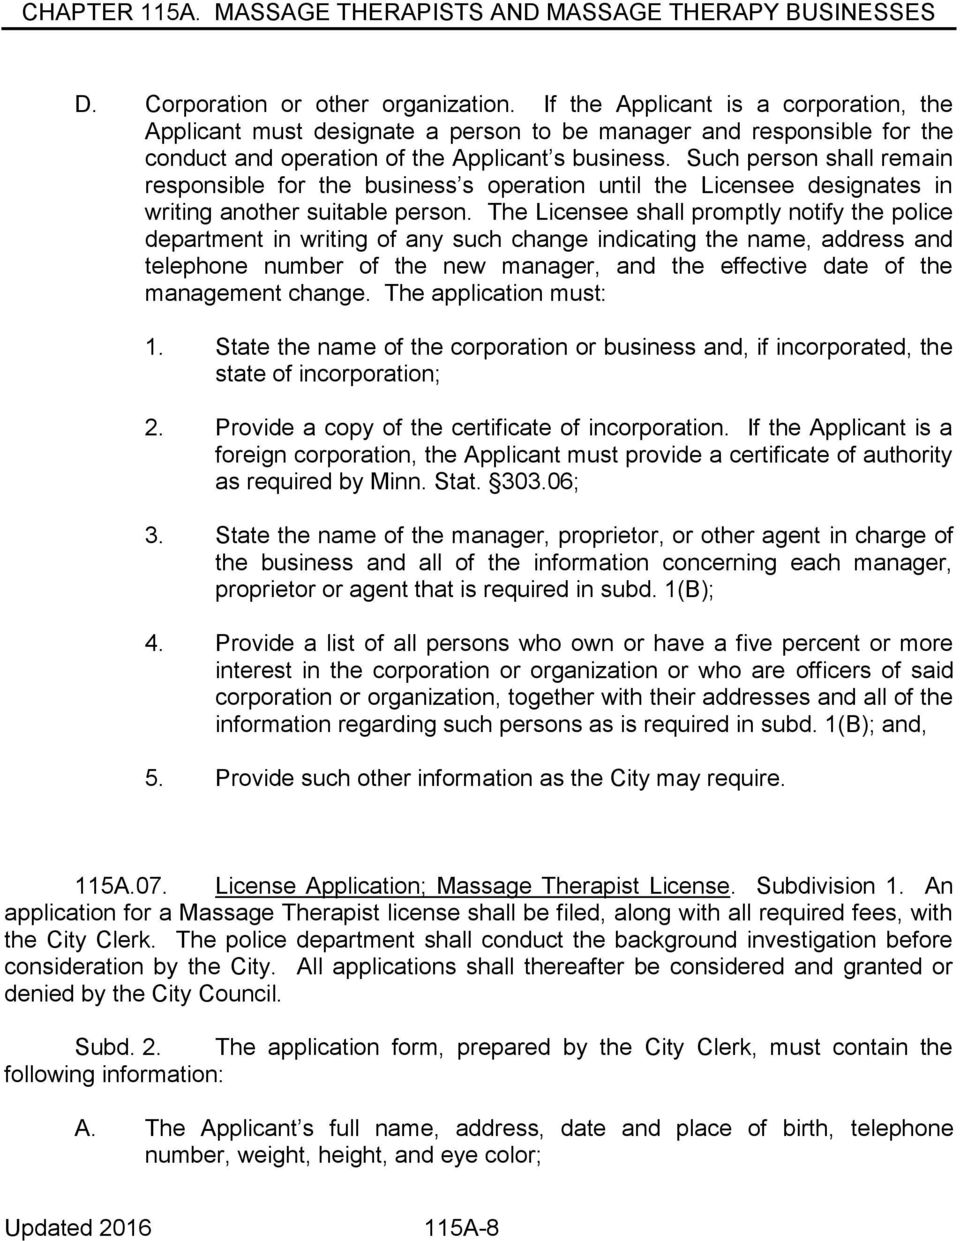 The Licensee shall promptly notify the police department in writing of any such change indicating the name, address and telephone number of the new manager, and the effective date of the management